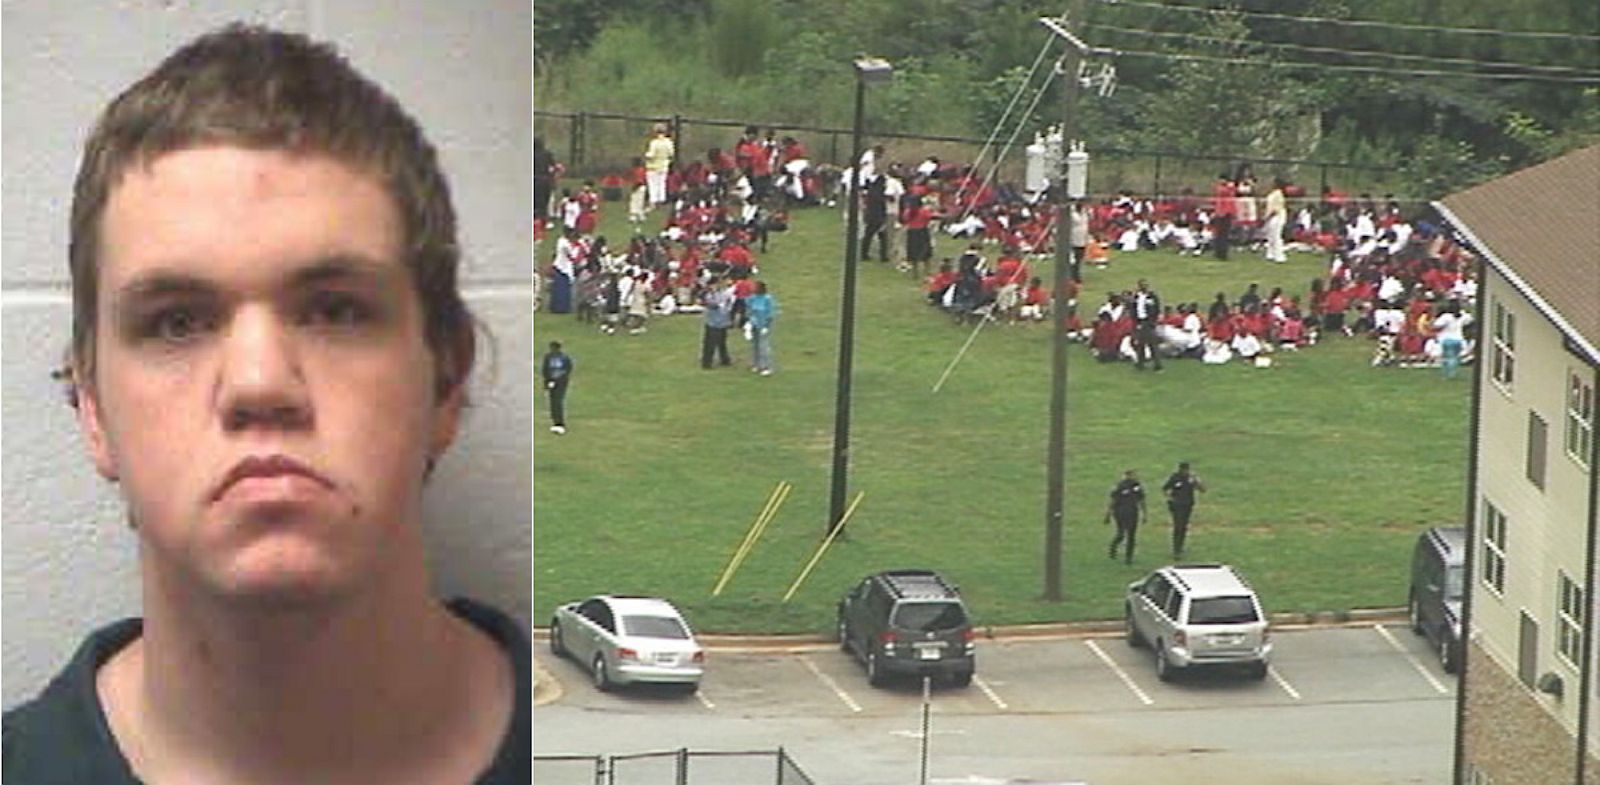 PHOTO: Michael Brandon Hill, seen here in this March, 2013 mugshot provided by the Henry County Sheriffs Office, was arrested after allegedly carrying an AK-47 and firing it in a Deaklb County, Georgia Elementary school (right) on August 20, 2013.